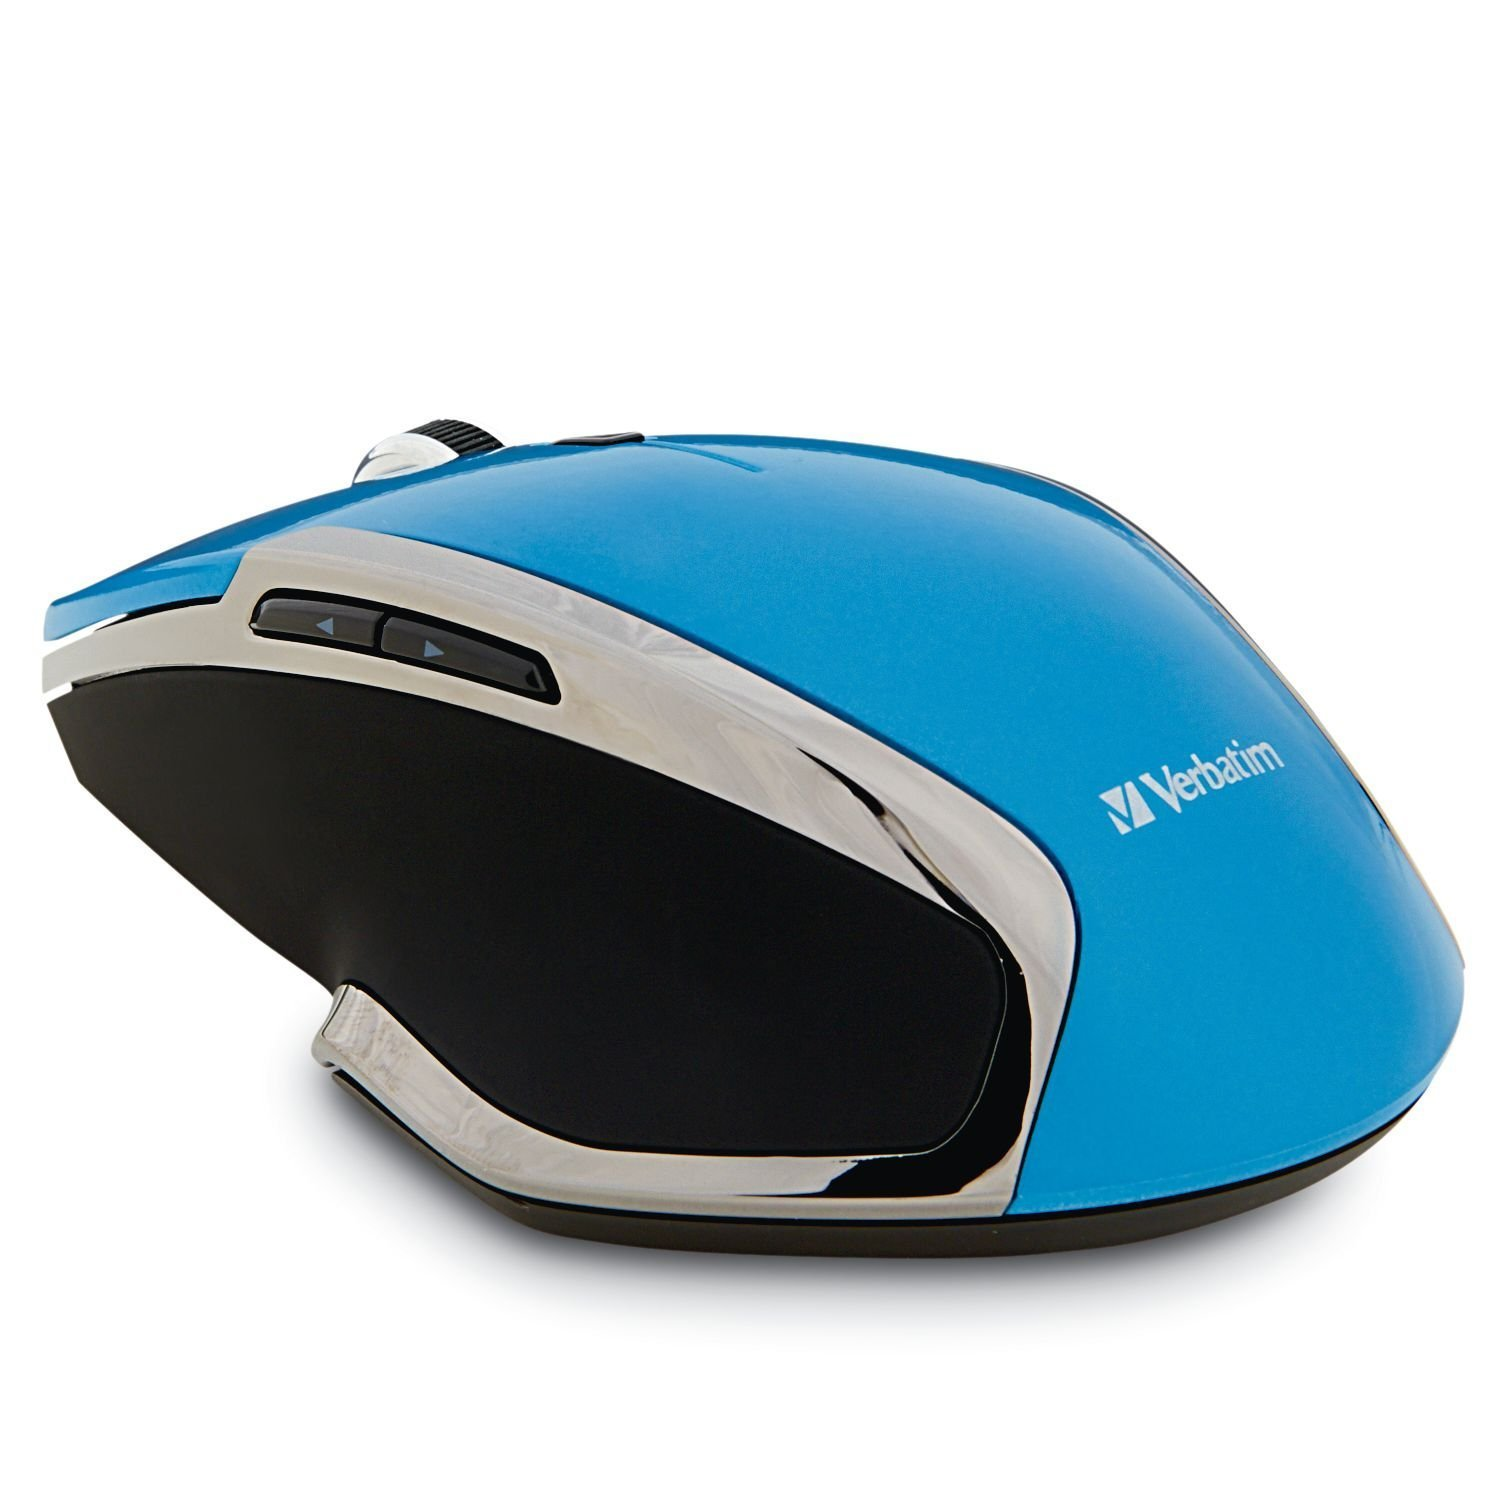 Usb Wireless Mouse, Blue 6-button Portable Led Ergonomic 2.4ghz Gaming Mouse